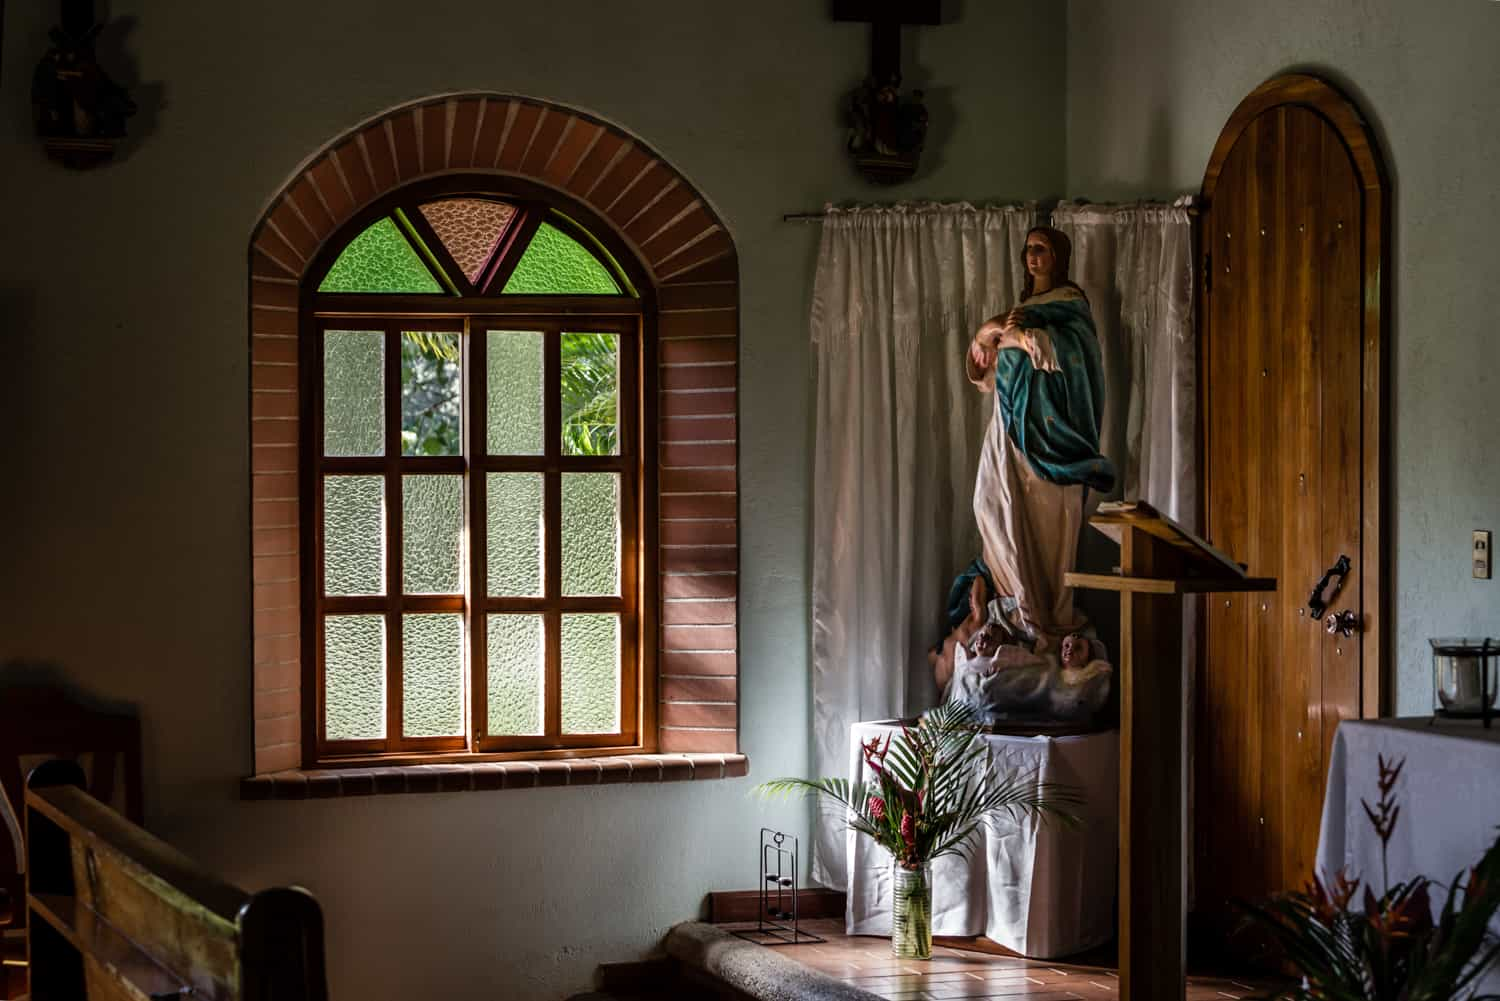 Sunlight pours into church trough window on statue.